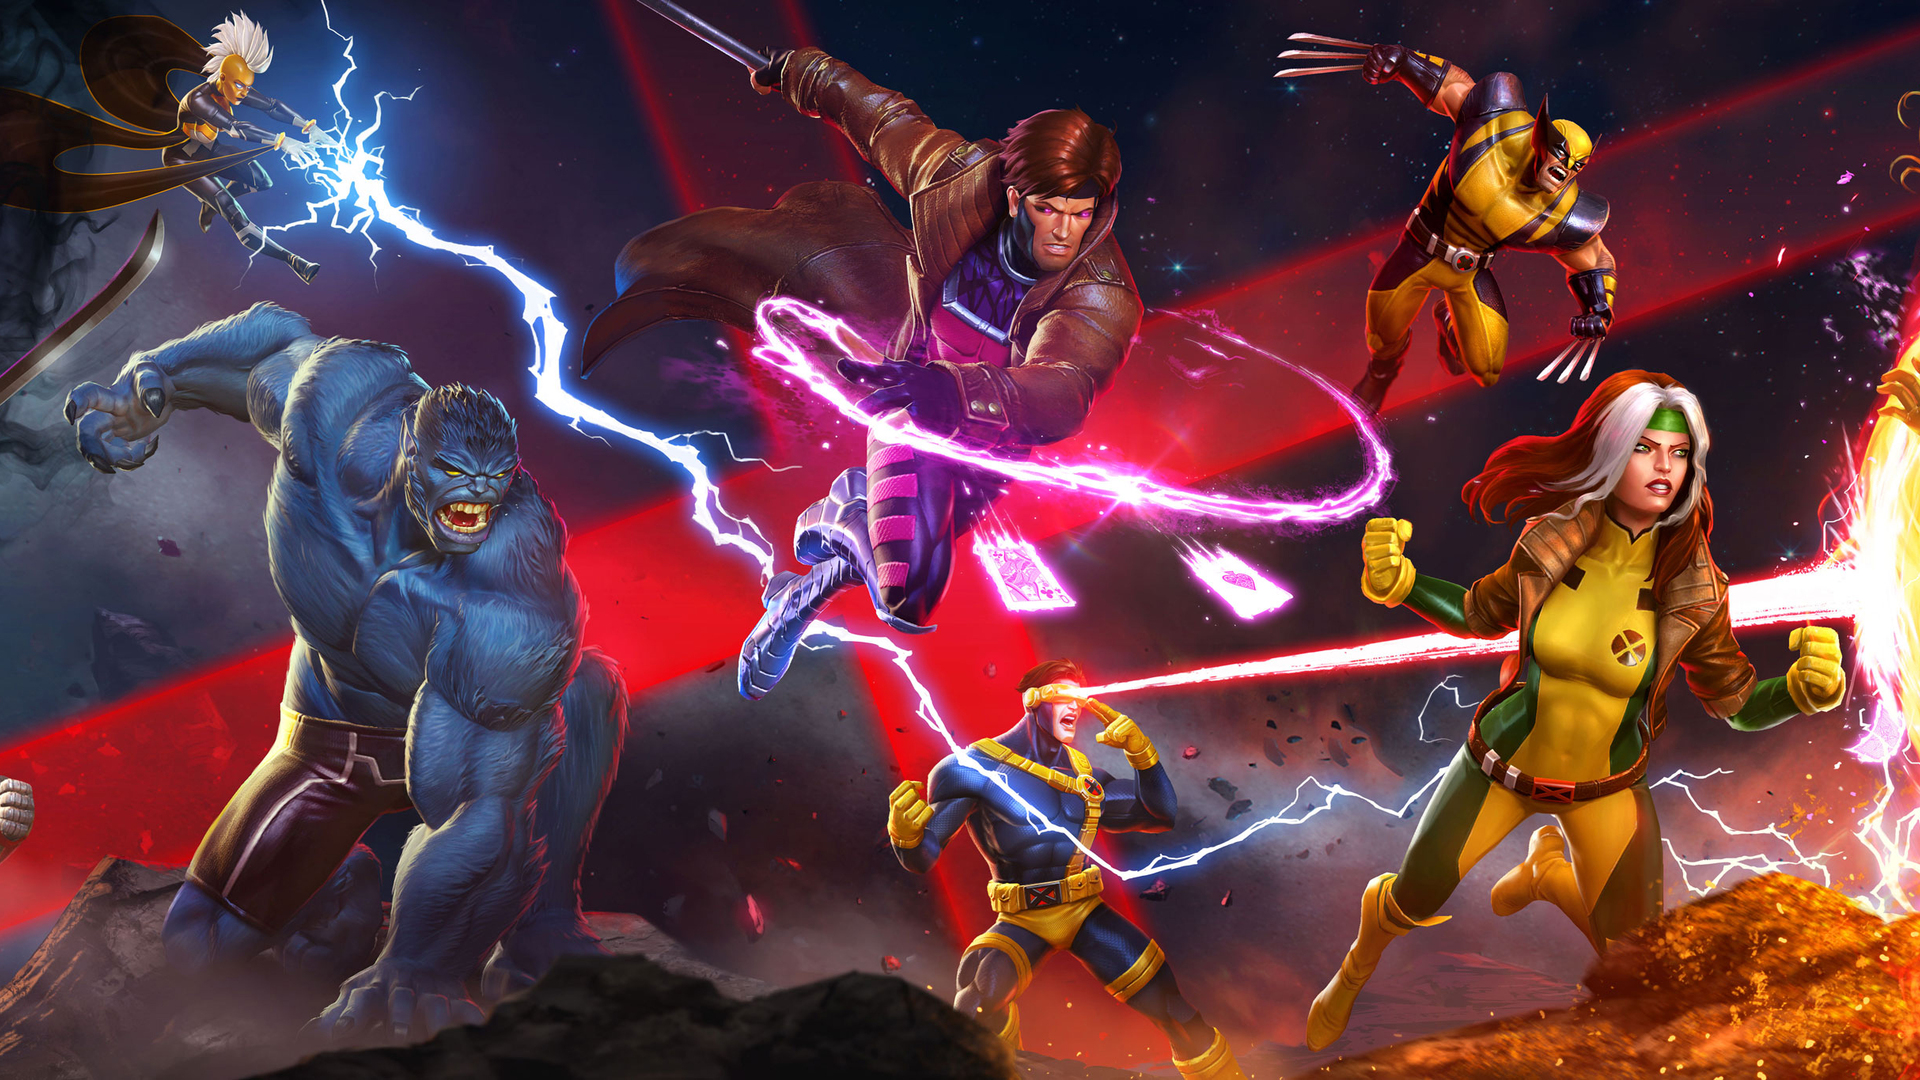 3d Thor Ragnarok Android Wallpaper 1920x1080 Marvel Contest Of Champions Laptop Full Hd 1080p